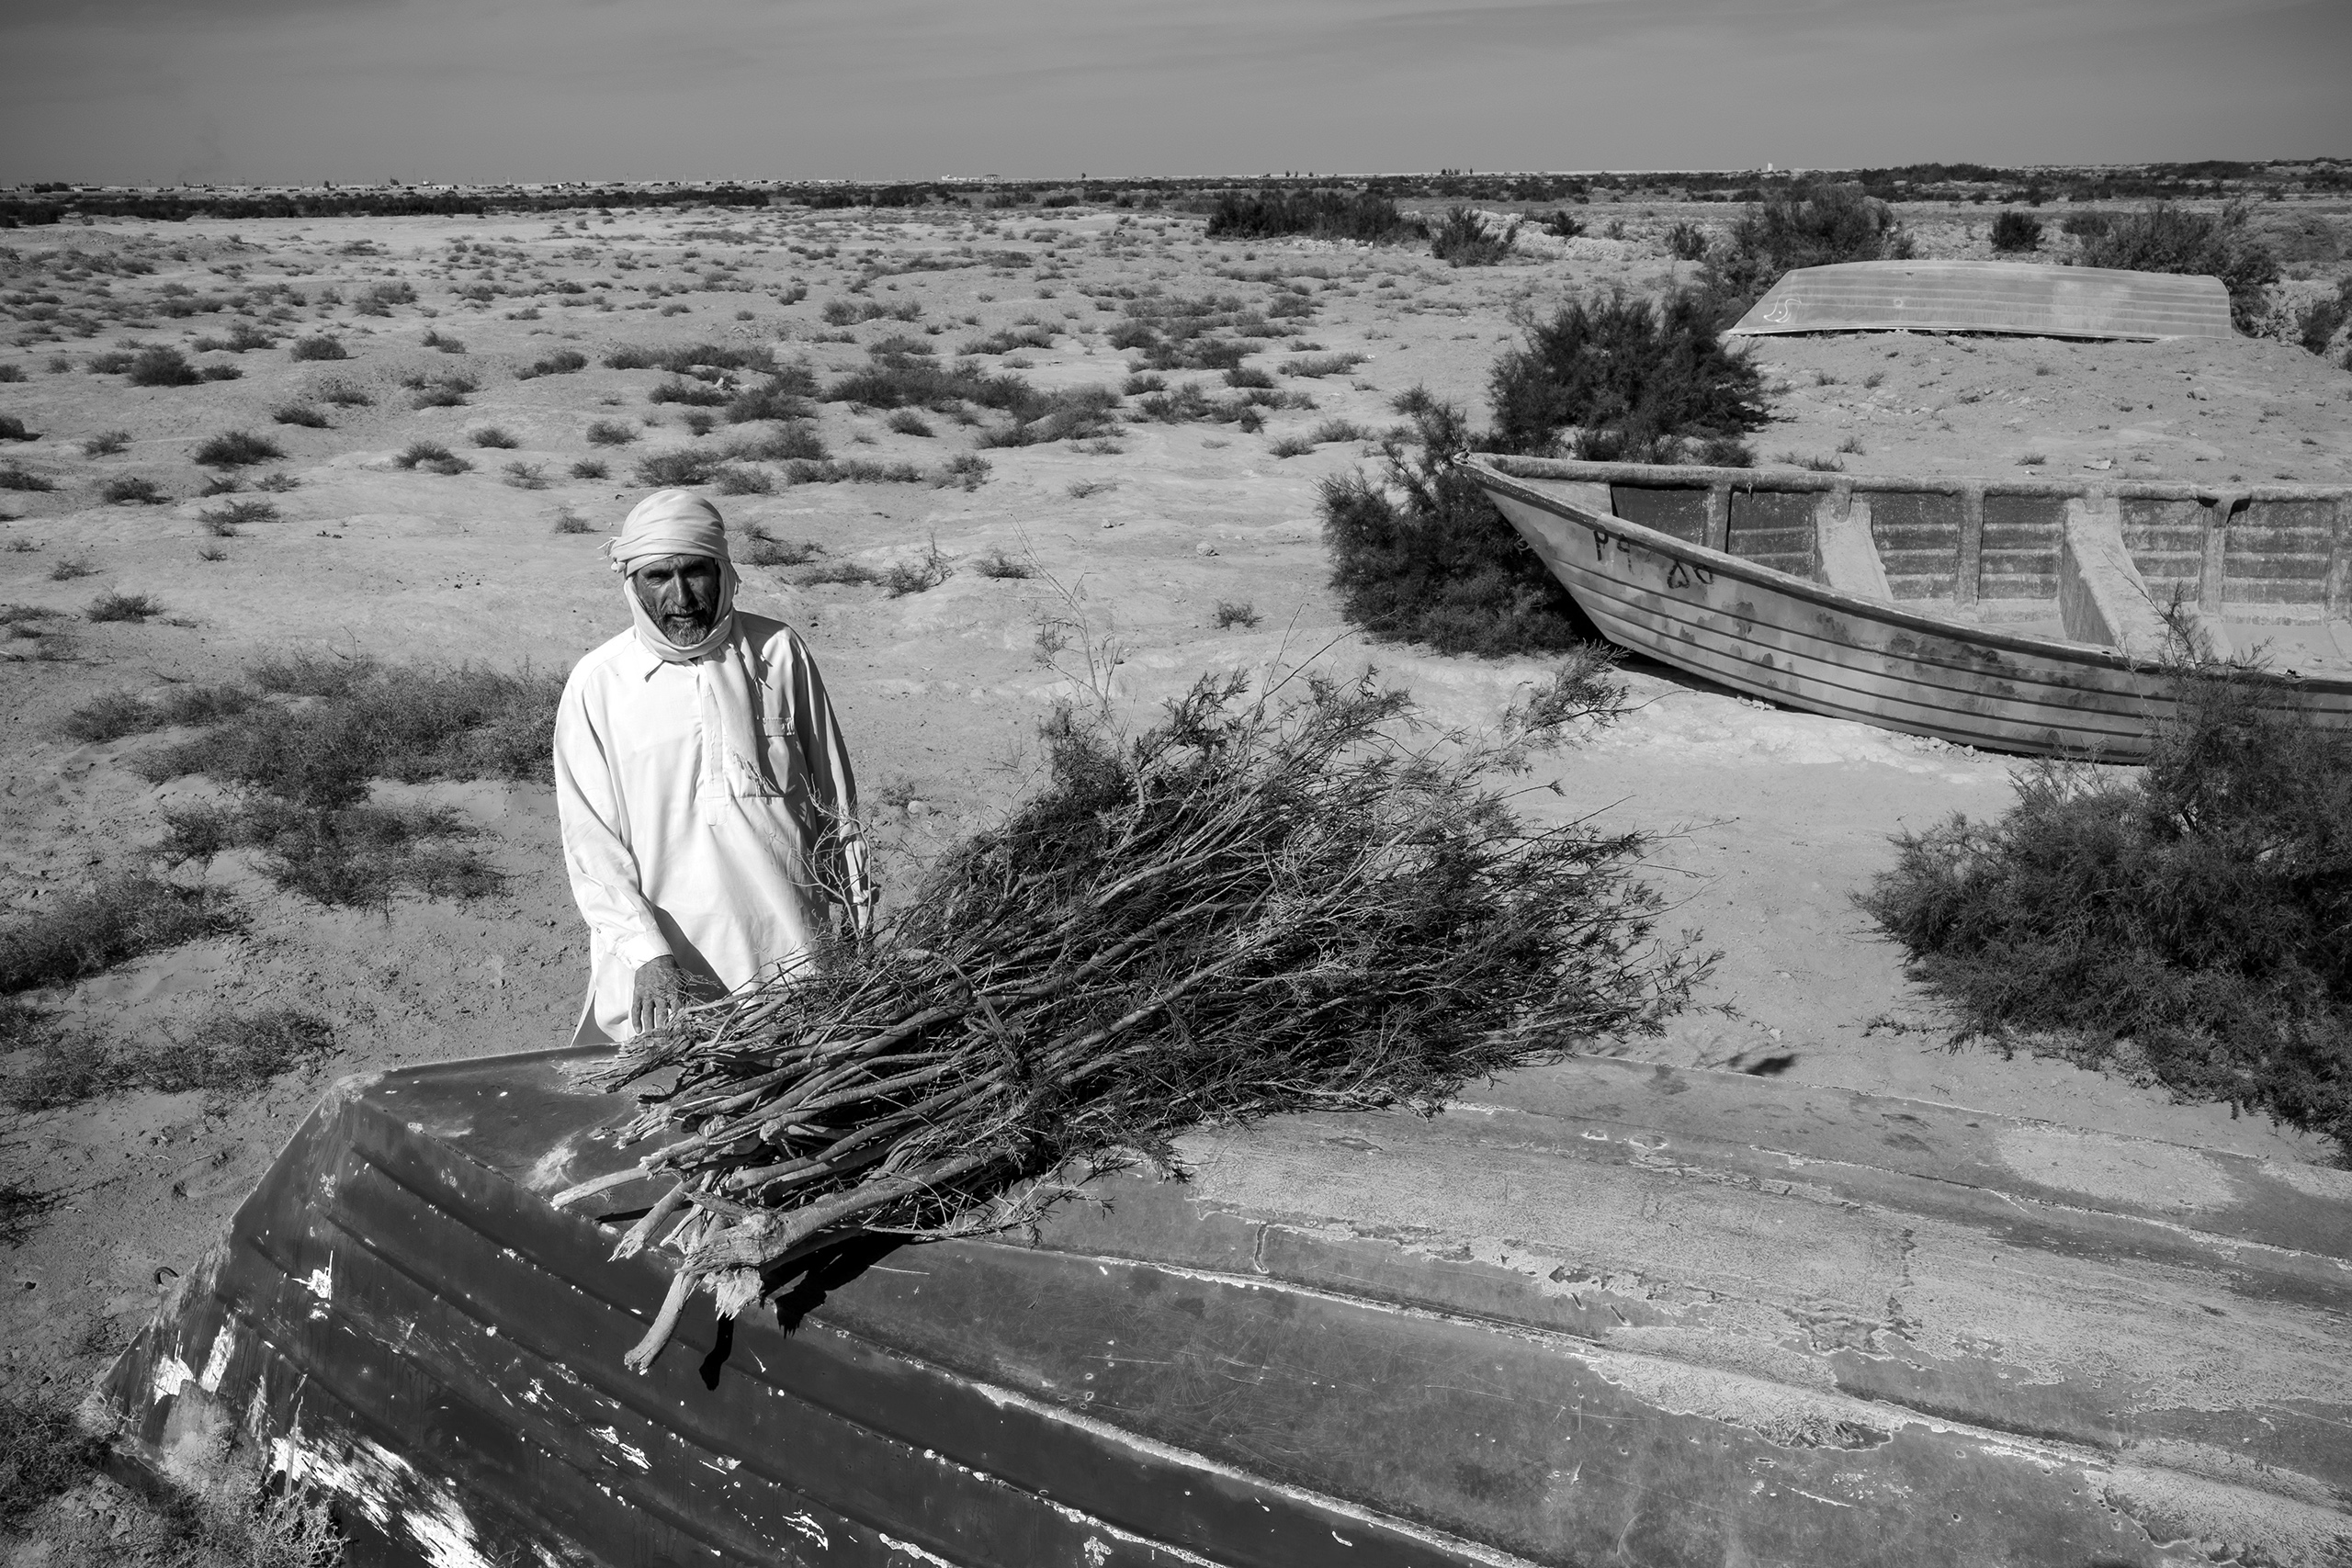 A fisherman sells tamarisk reeds in the dried-out seabed of Lake Hamoon.  At the border between Iran and Afghanistan, the Sistan Basin is one of the most arid places in the world. Drought and mismanagement of irrigation has contributed to drying out the lake, impacting wildlife and the livelihood of the local population, December 2016.